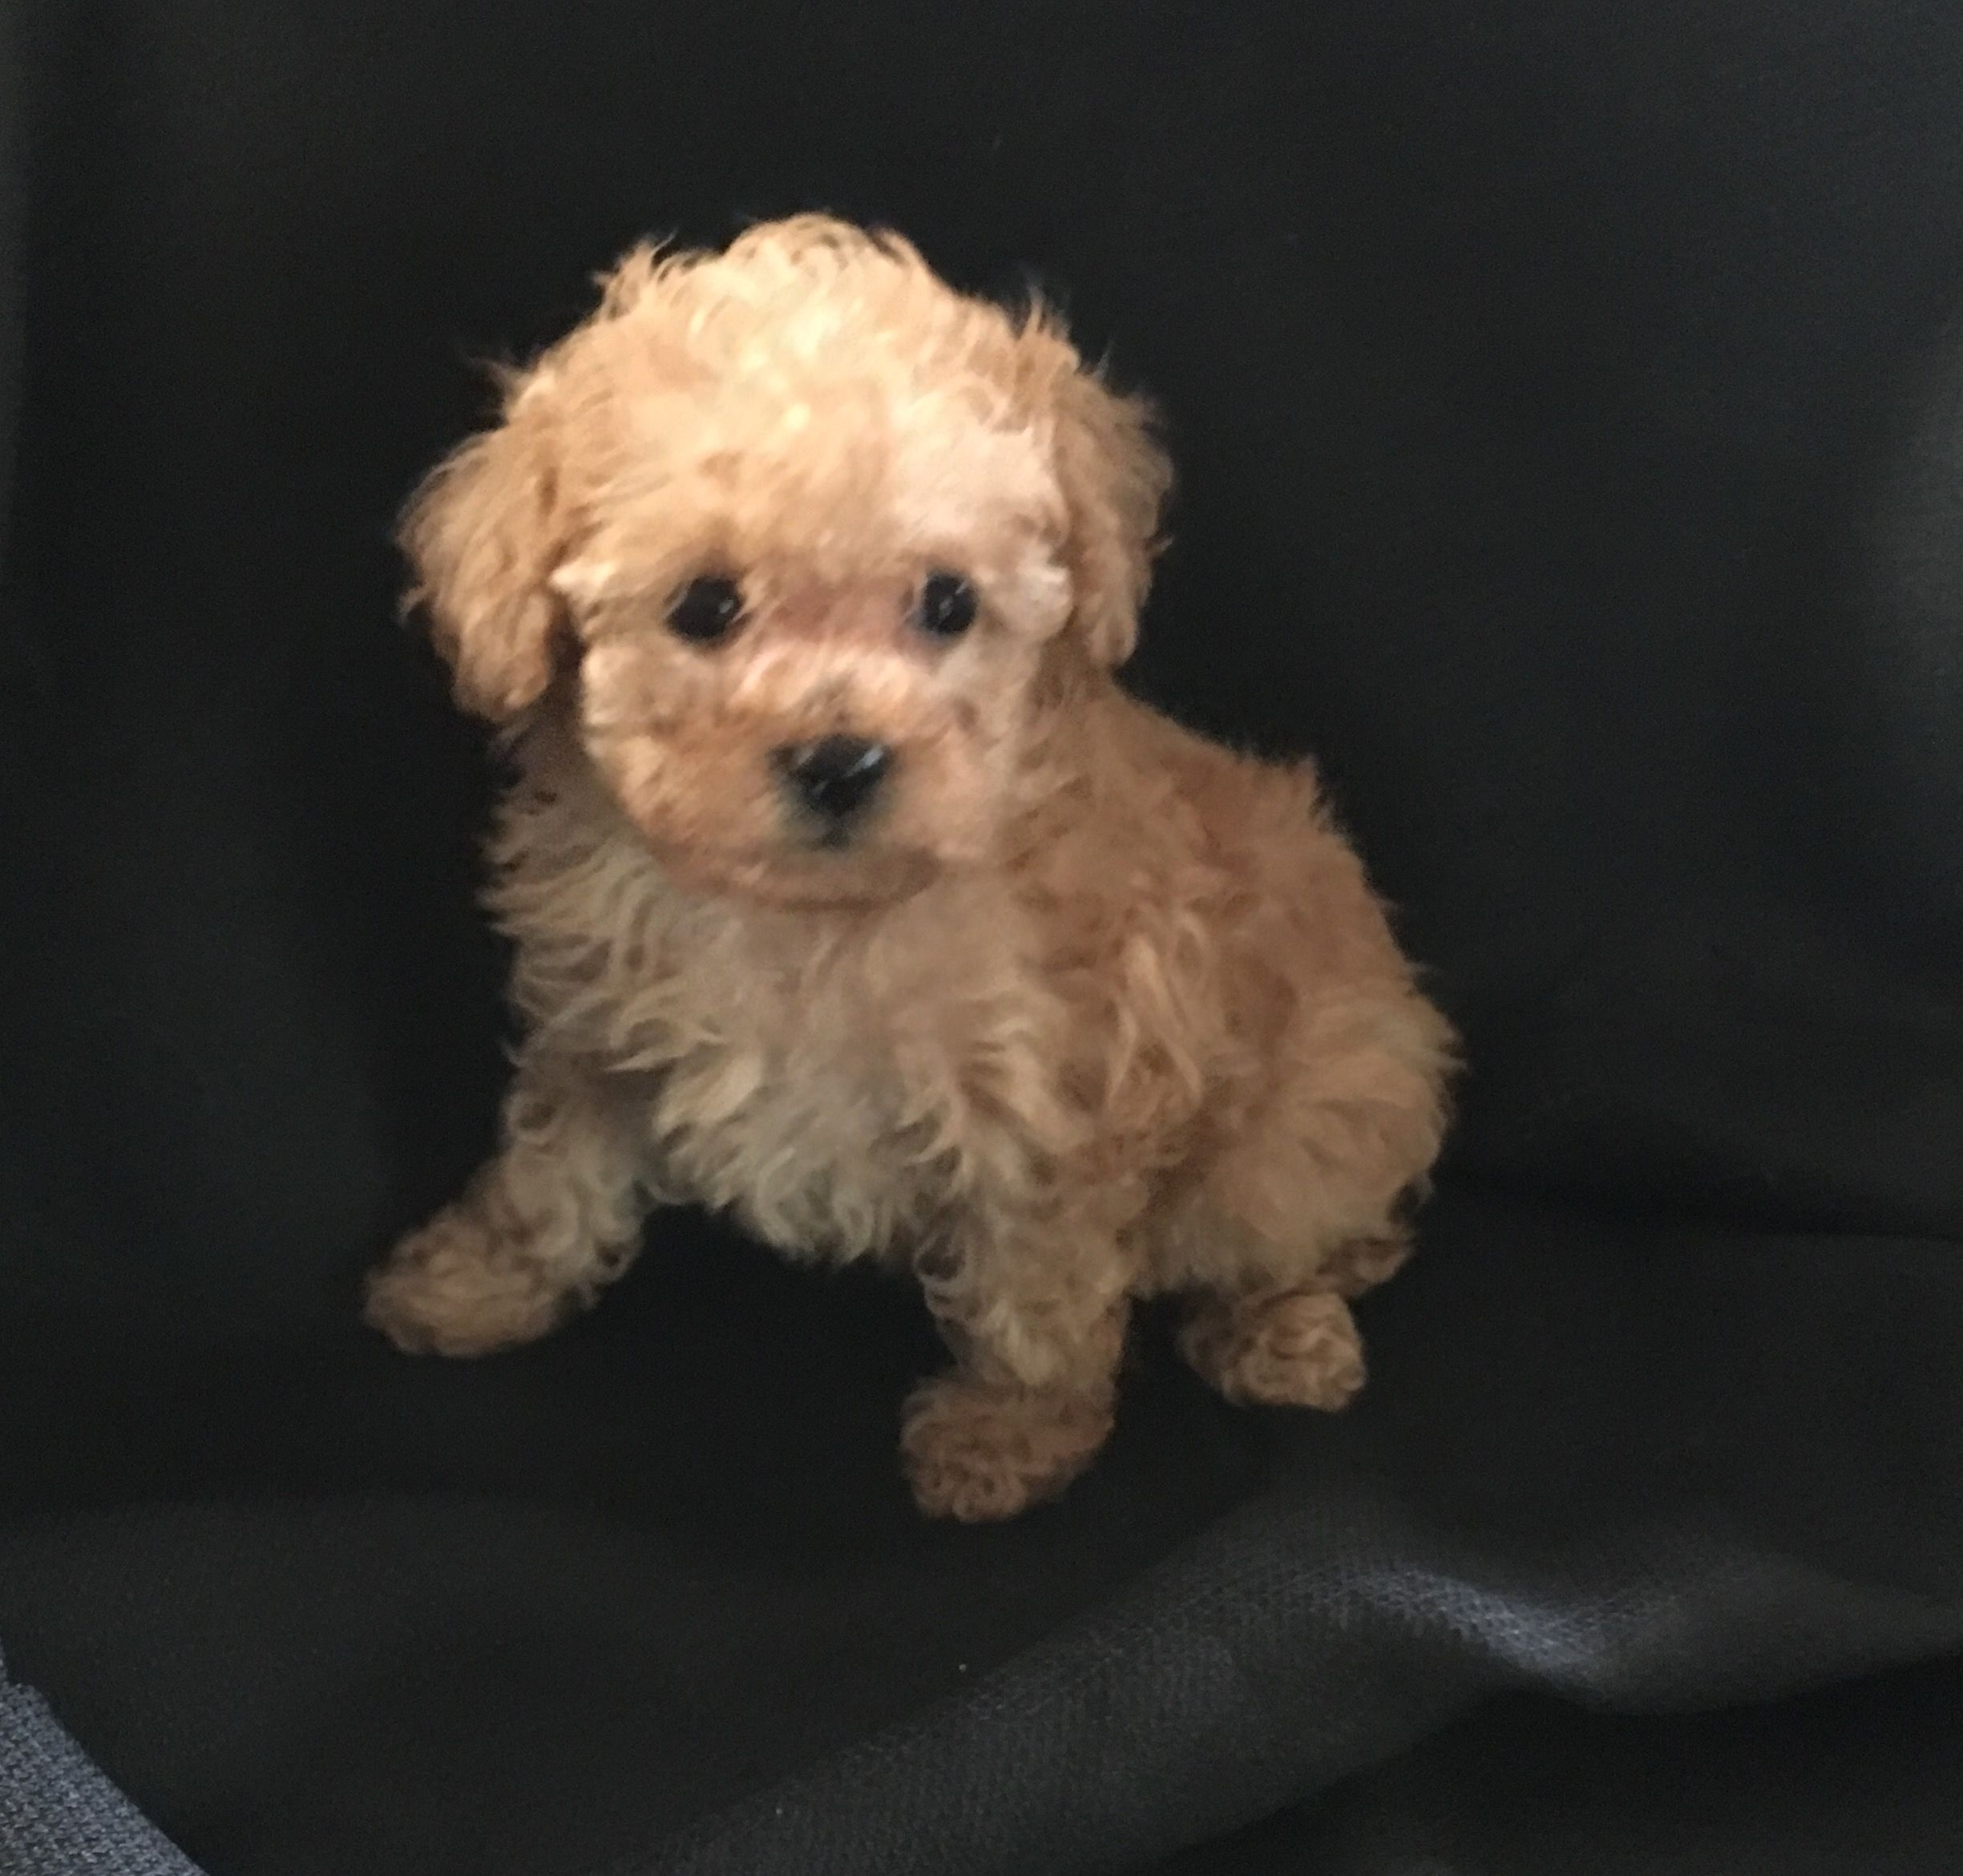 Designer And Mix Puppies Morkies Maltipoos Red Maltipoos Yorkshire Terrier Shih Tzu Havanese Toy And Teacup Poo Poodle French Bulldog Puppies Poodle Dog